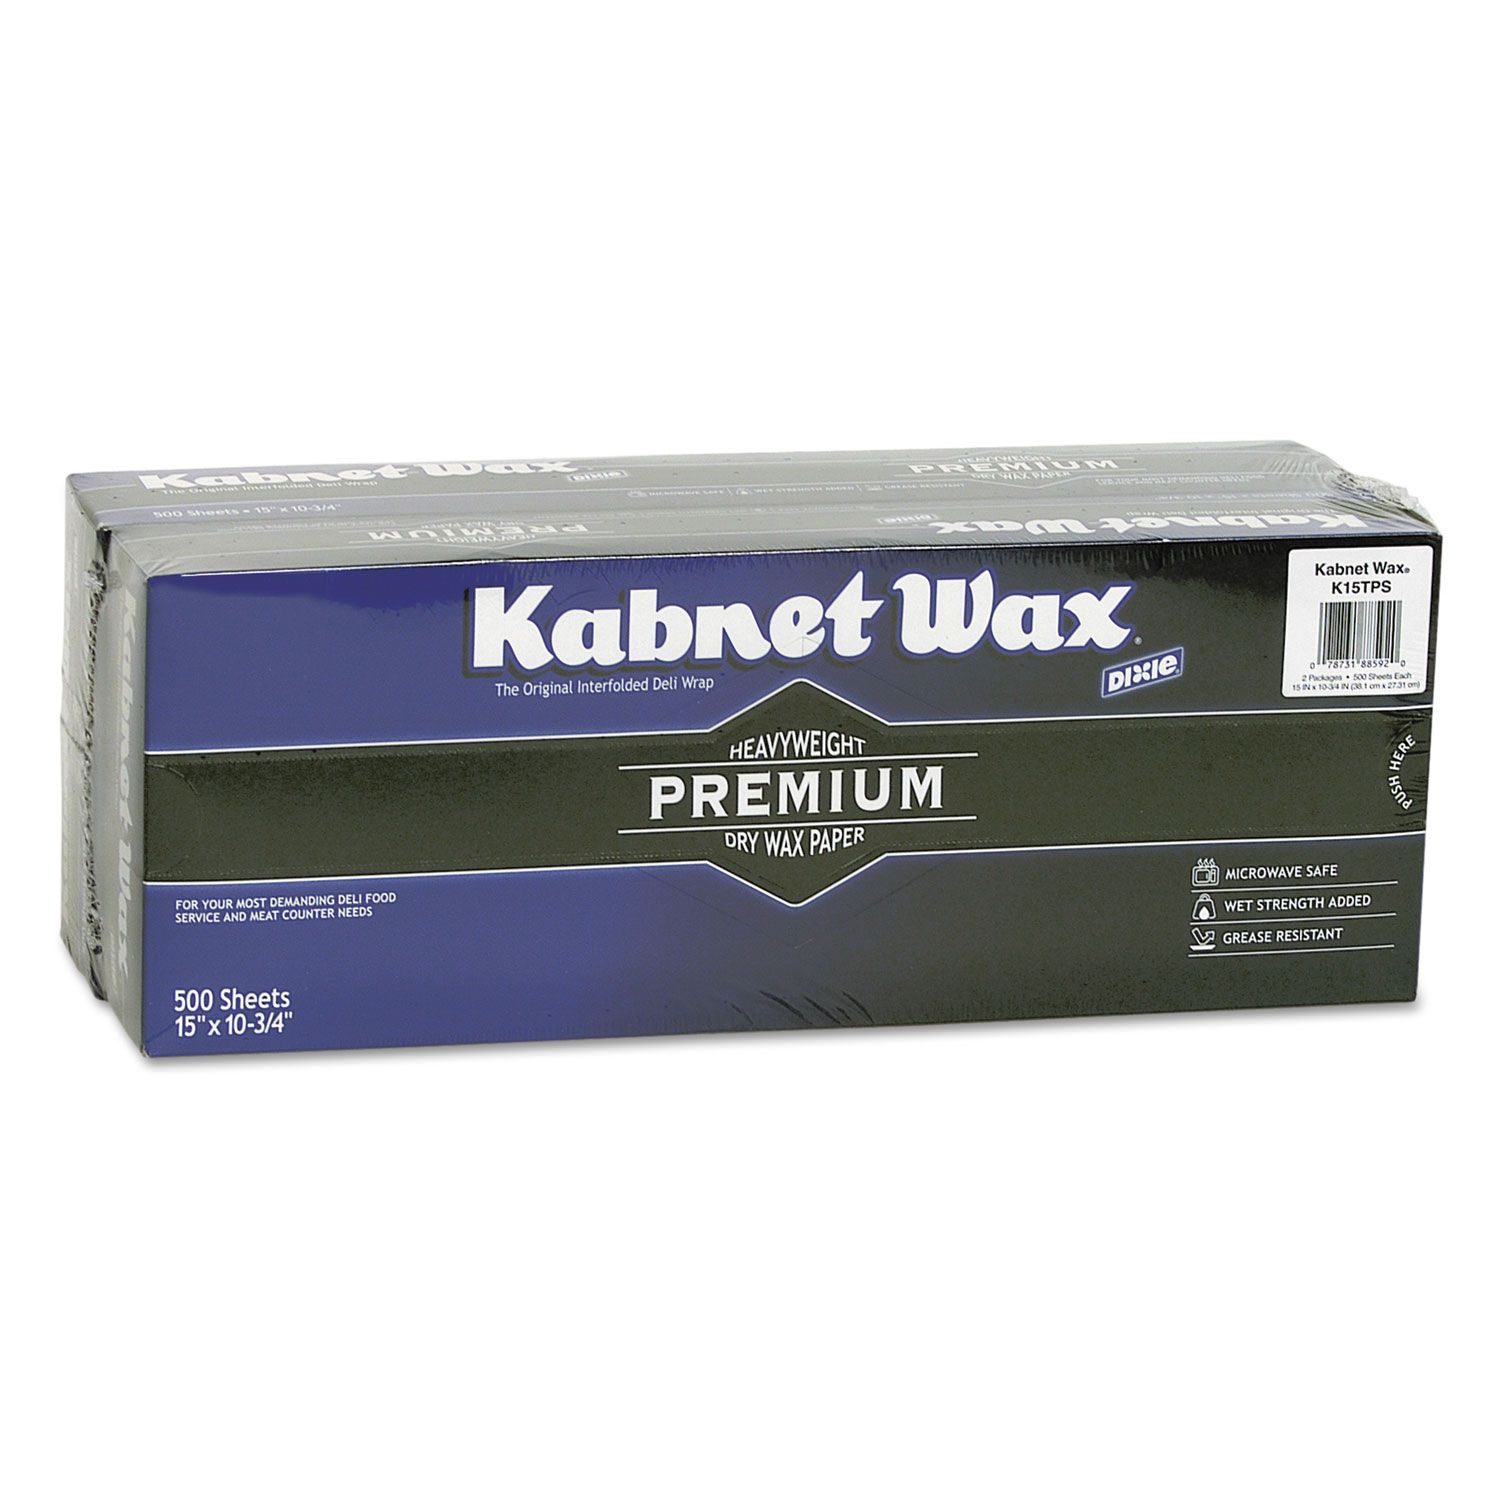 Dixie Kabnet Wax Dry Wax Paper - 2/500 ct. at Sears.com